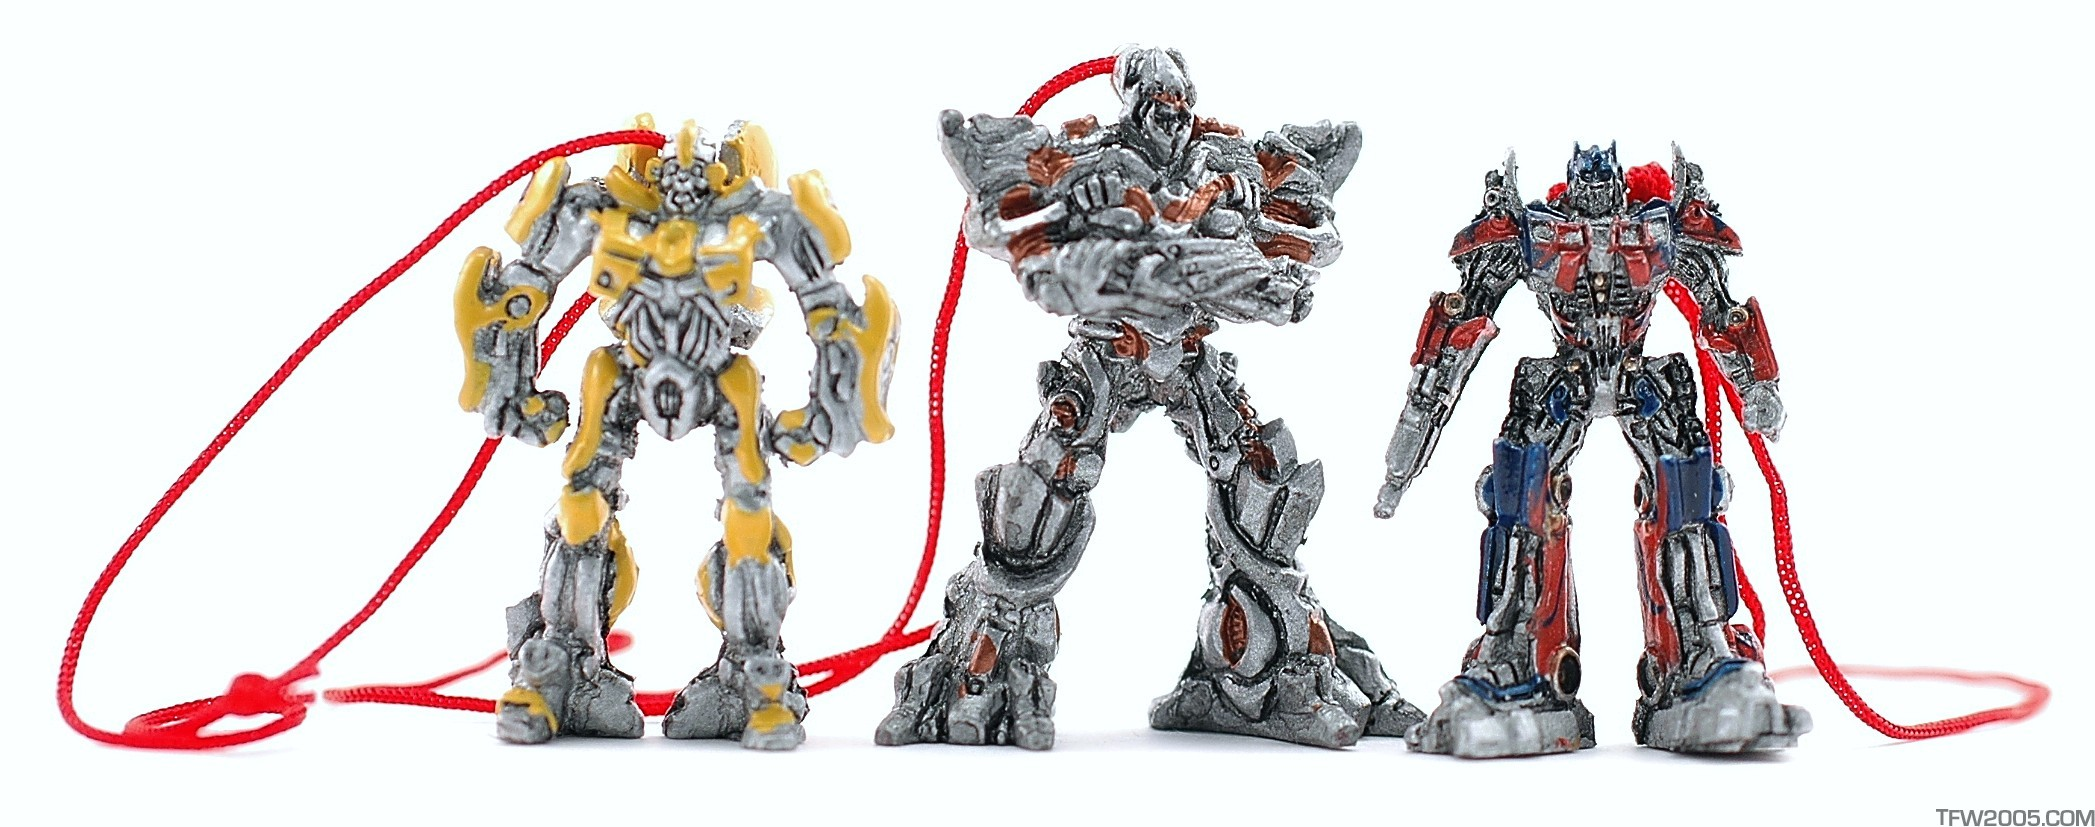 Transformers Movie Mini Christmas Ornaments 3 Pack - Reflector ...